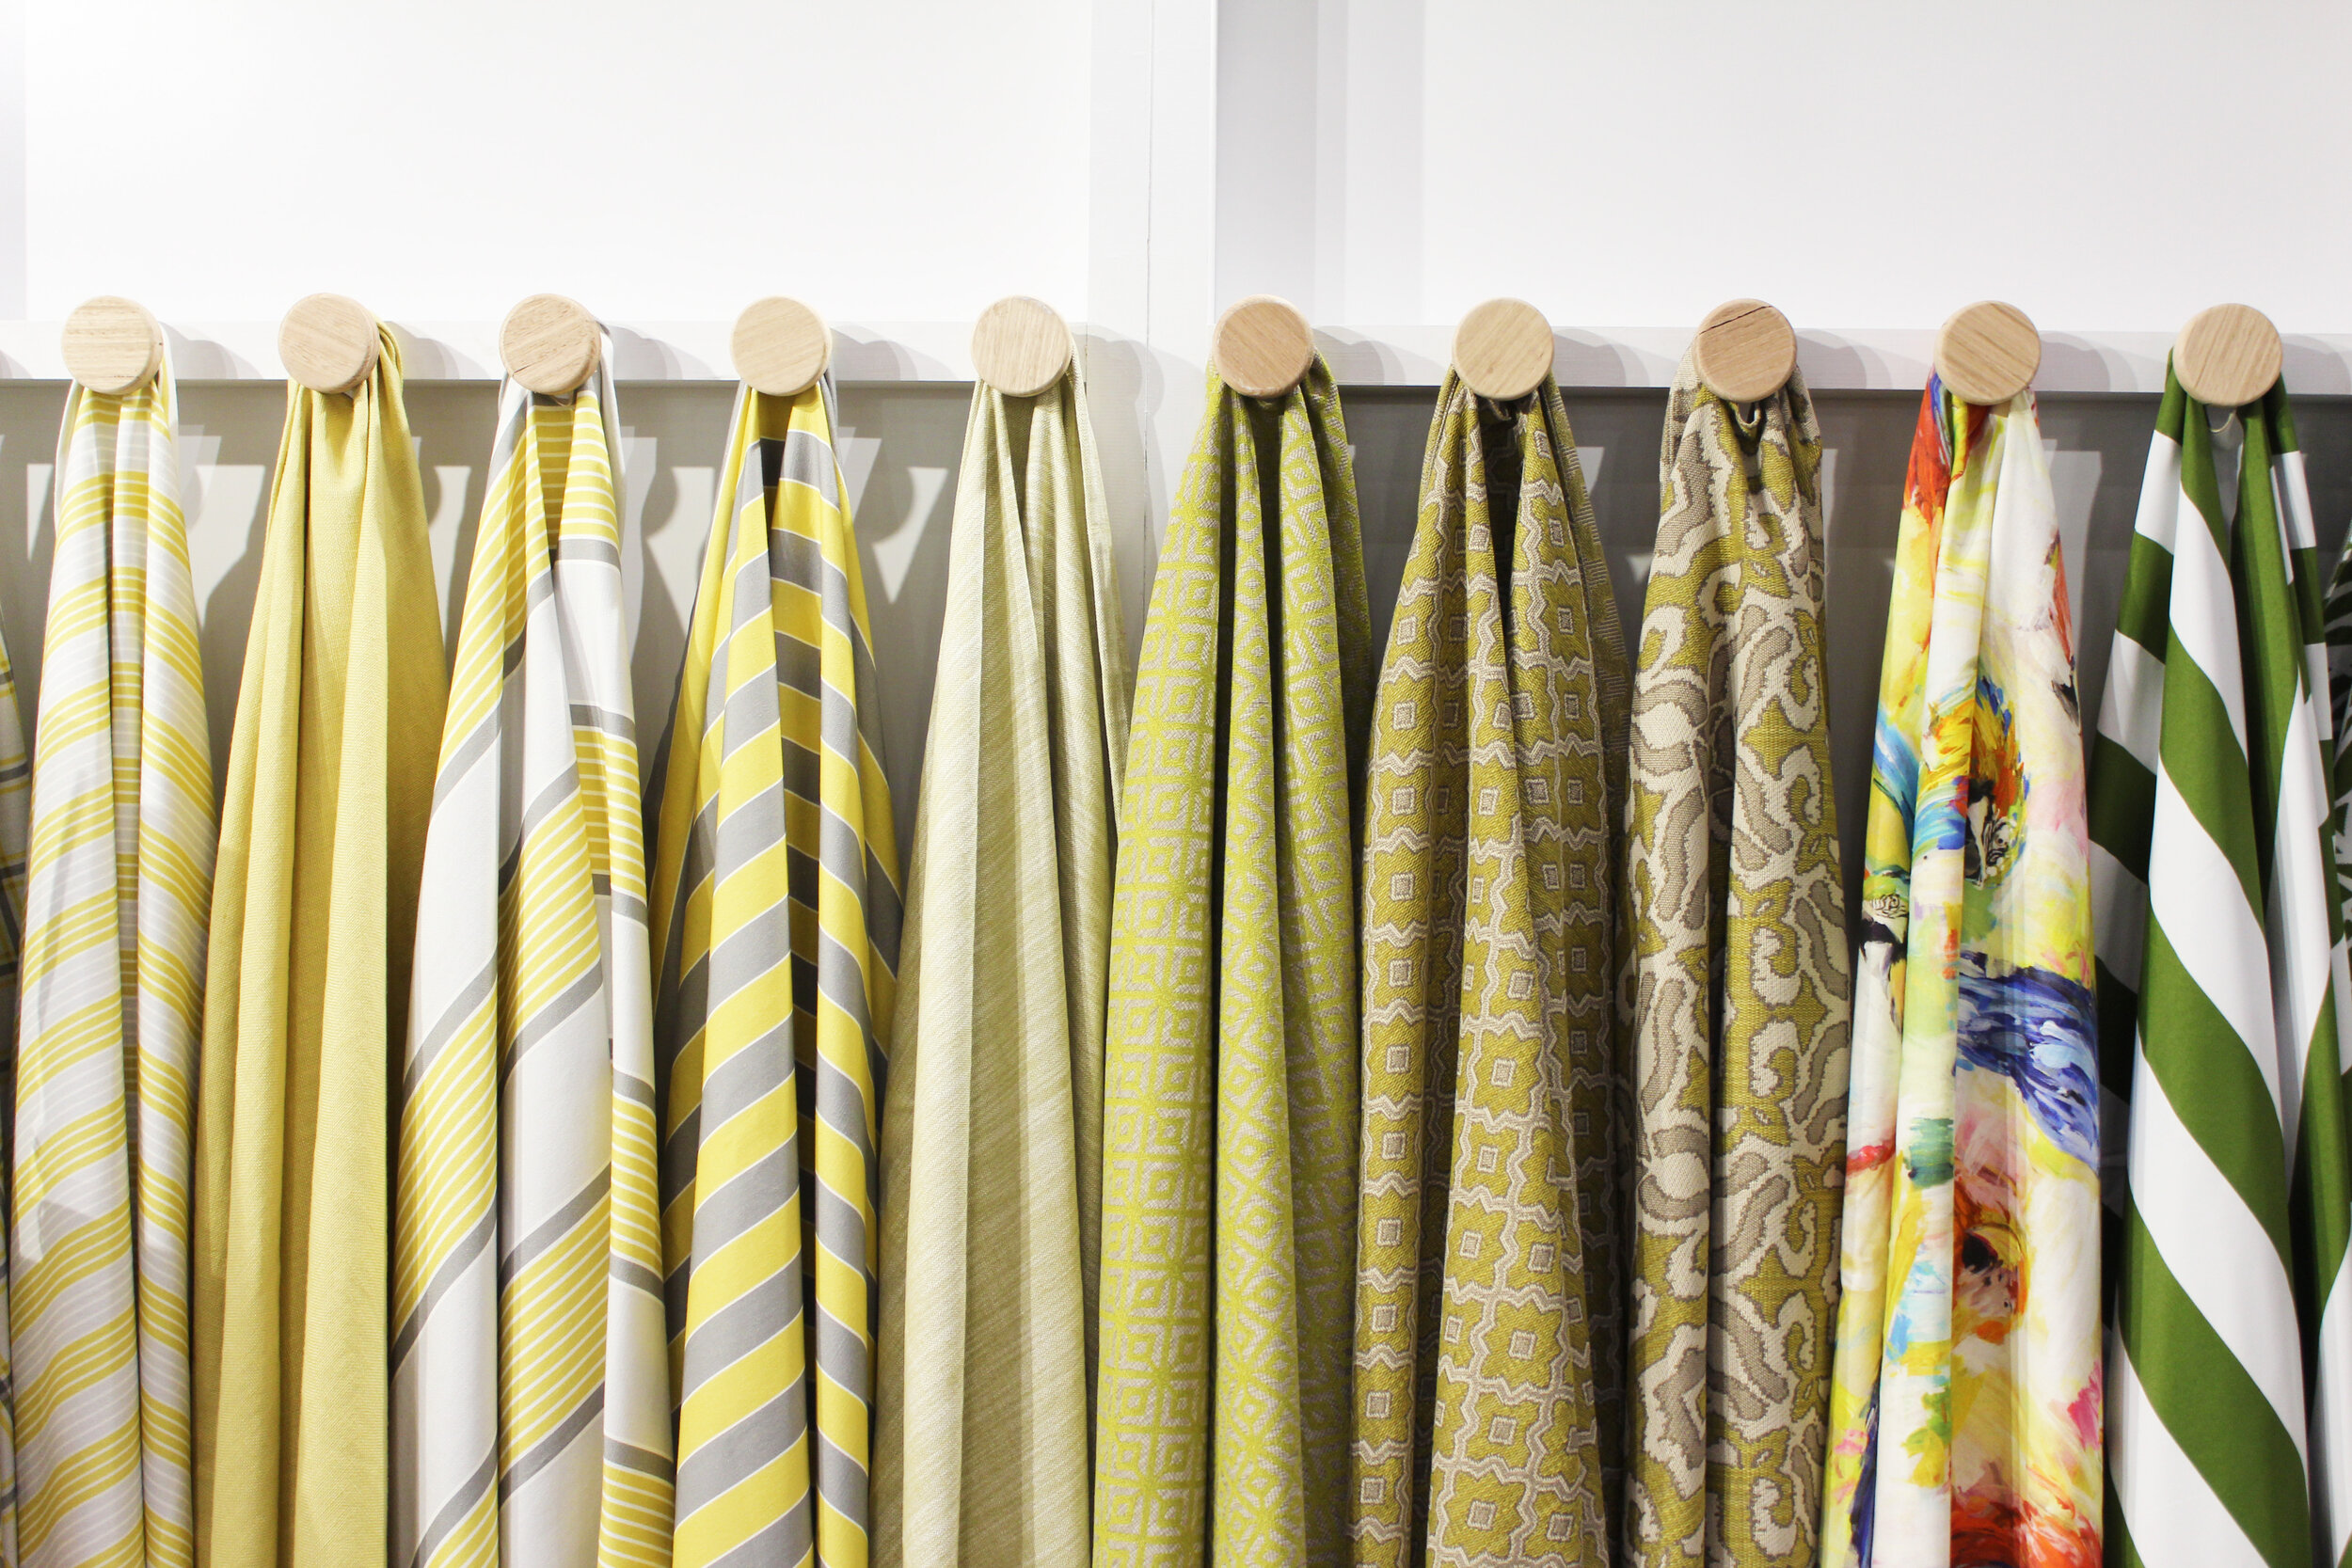 The Client. - Warwick is one of the worlds leading fabric and textile wholesalers providing premium quality materials to industry specialists since 1966. With wholesale and retail showrooms, multiple brands and locations all around Australia our work with Warwick has been broad and carried over a number of years.